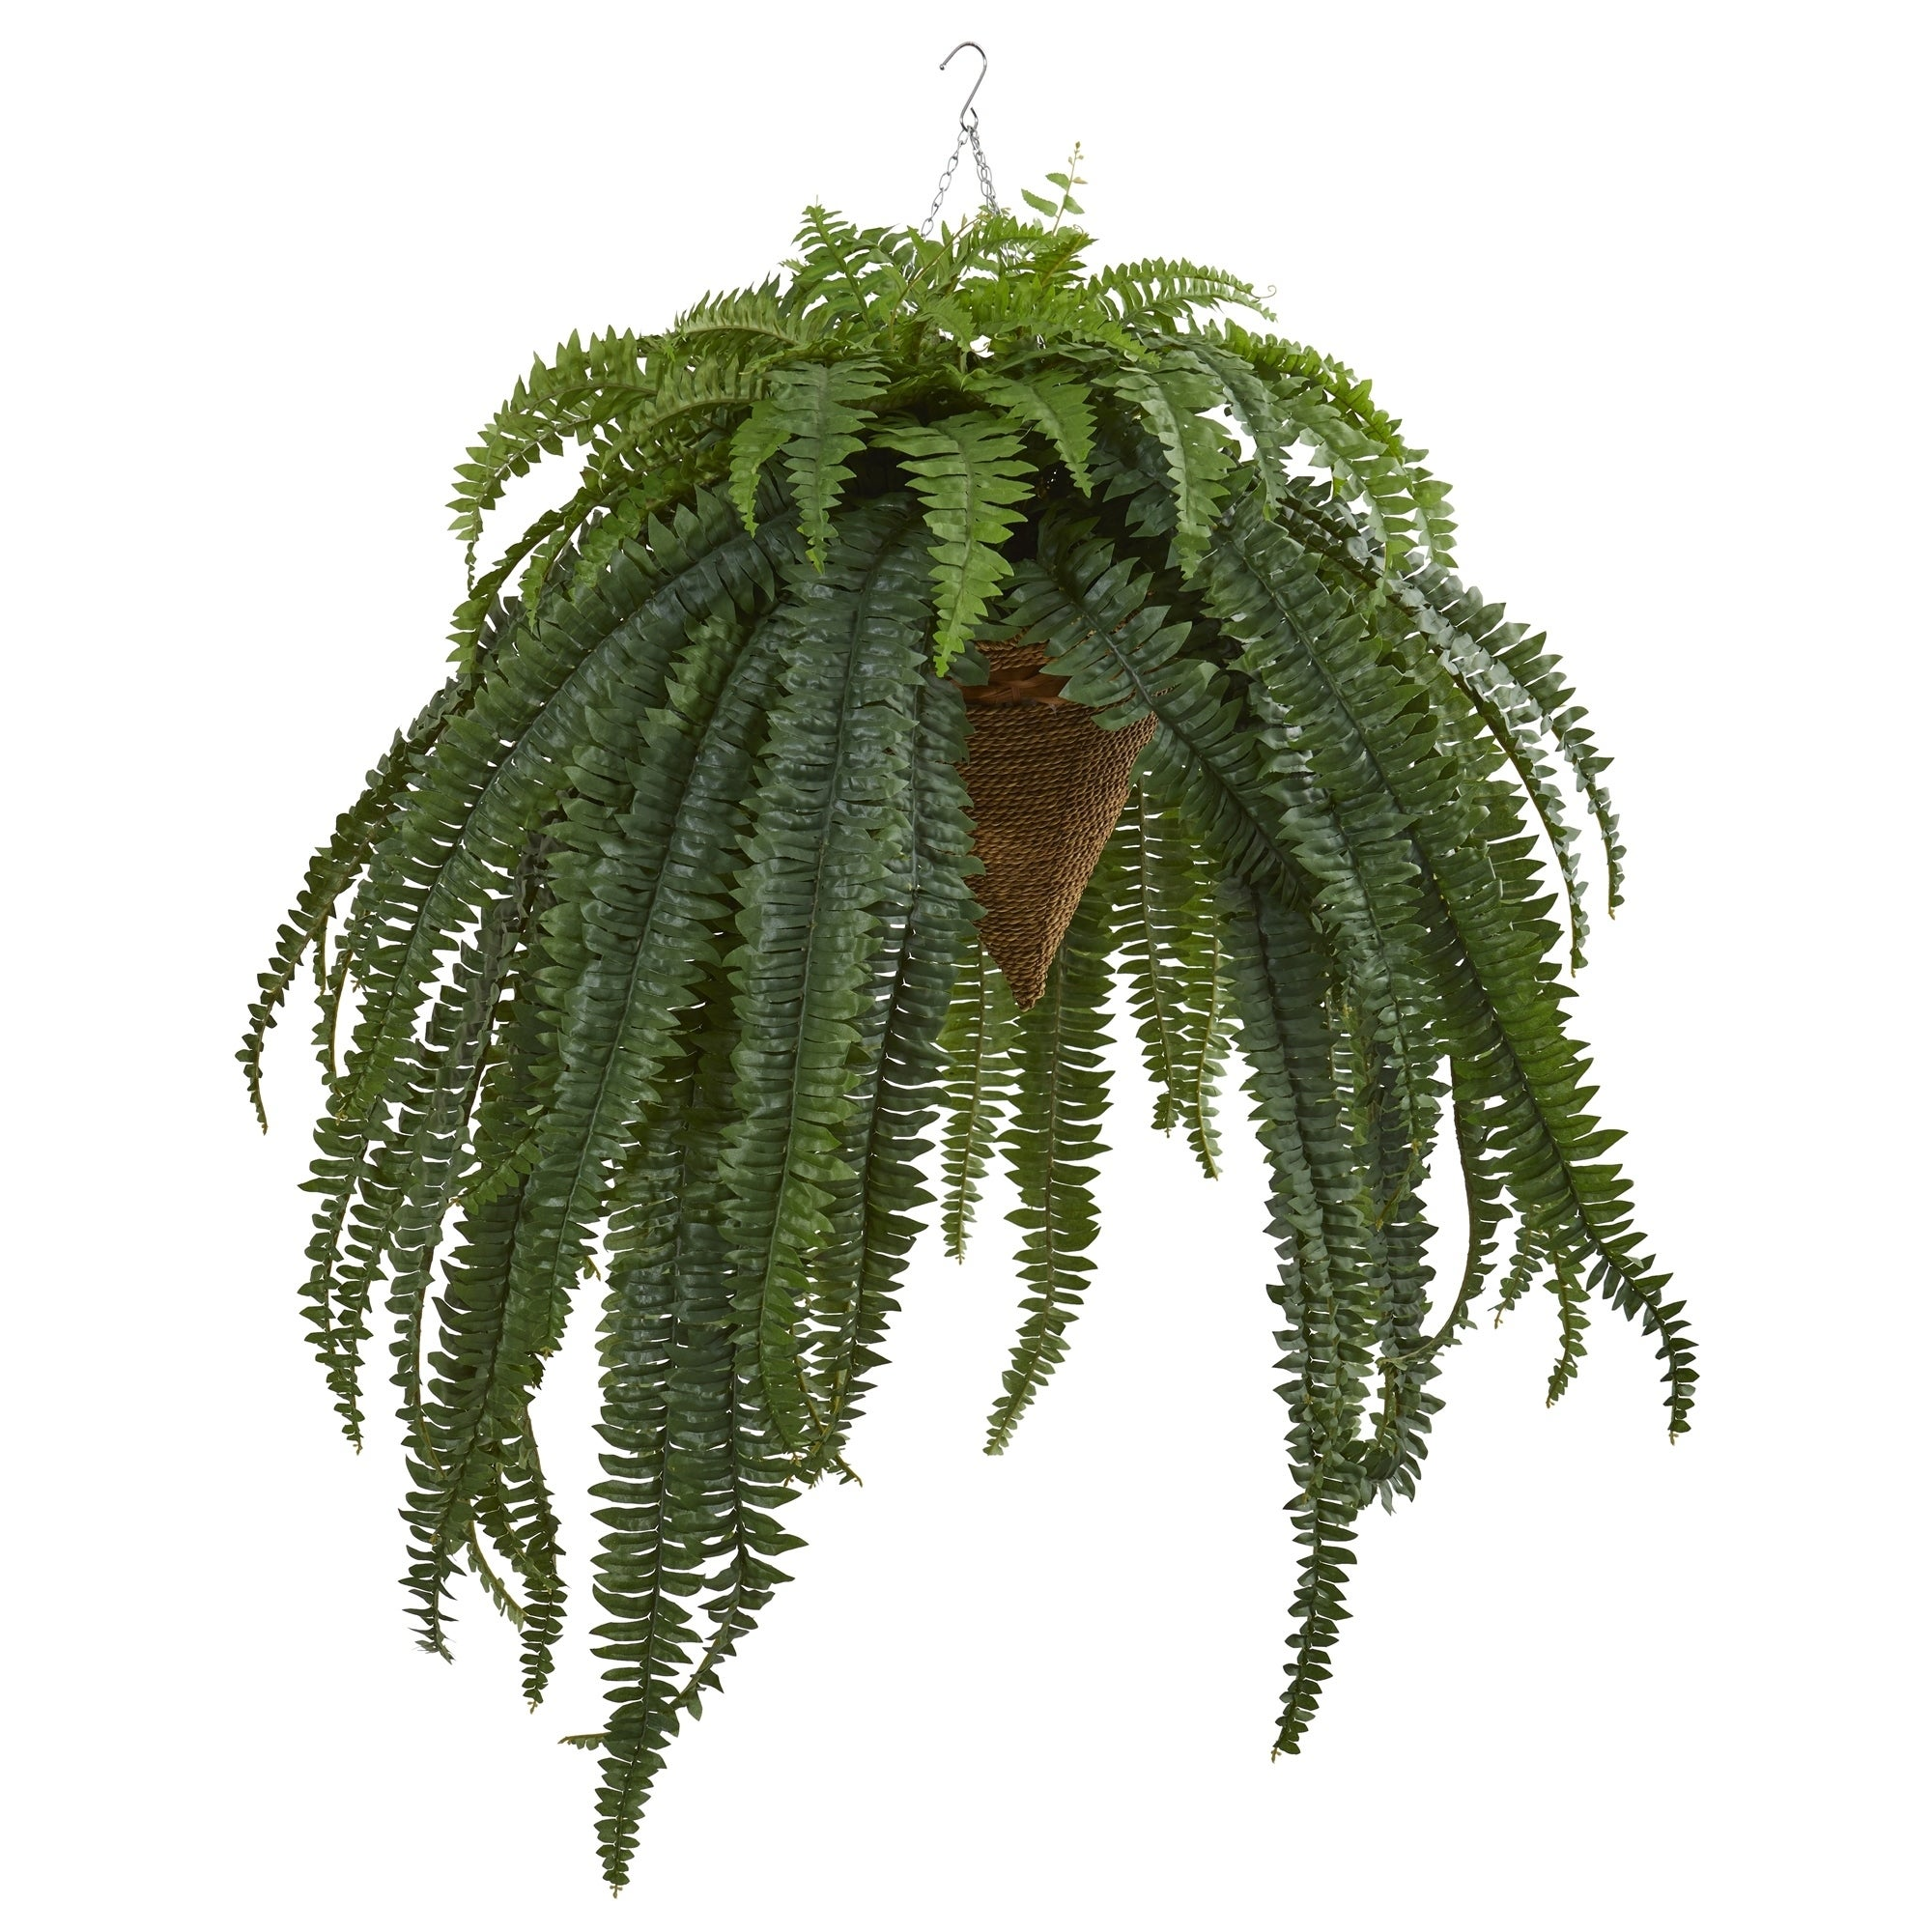 50 Giant Boston Fern Artificial Plant in Hanging Cone